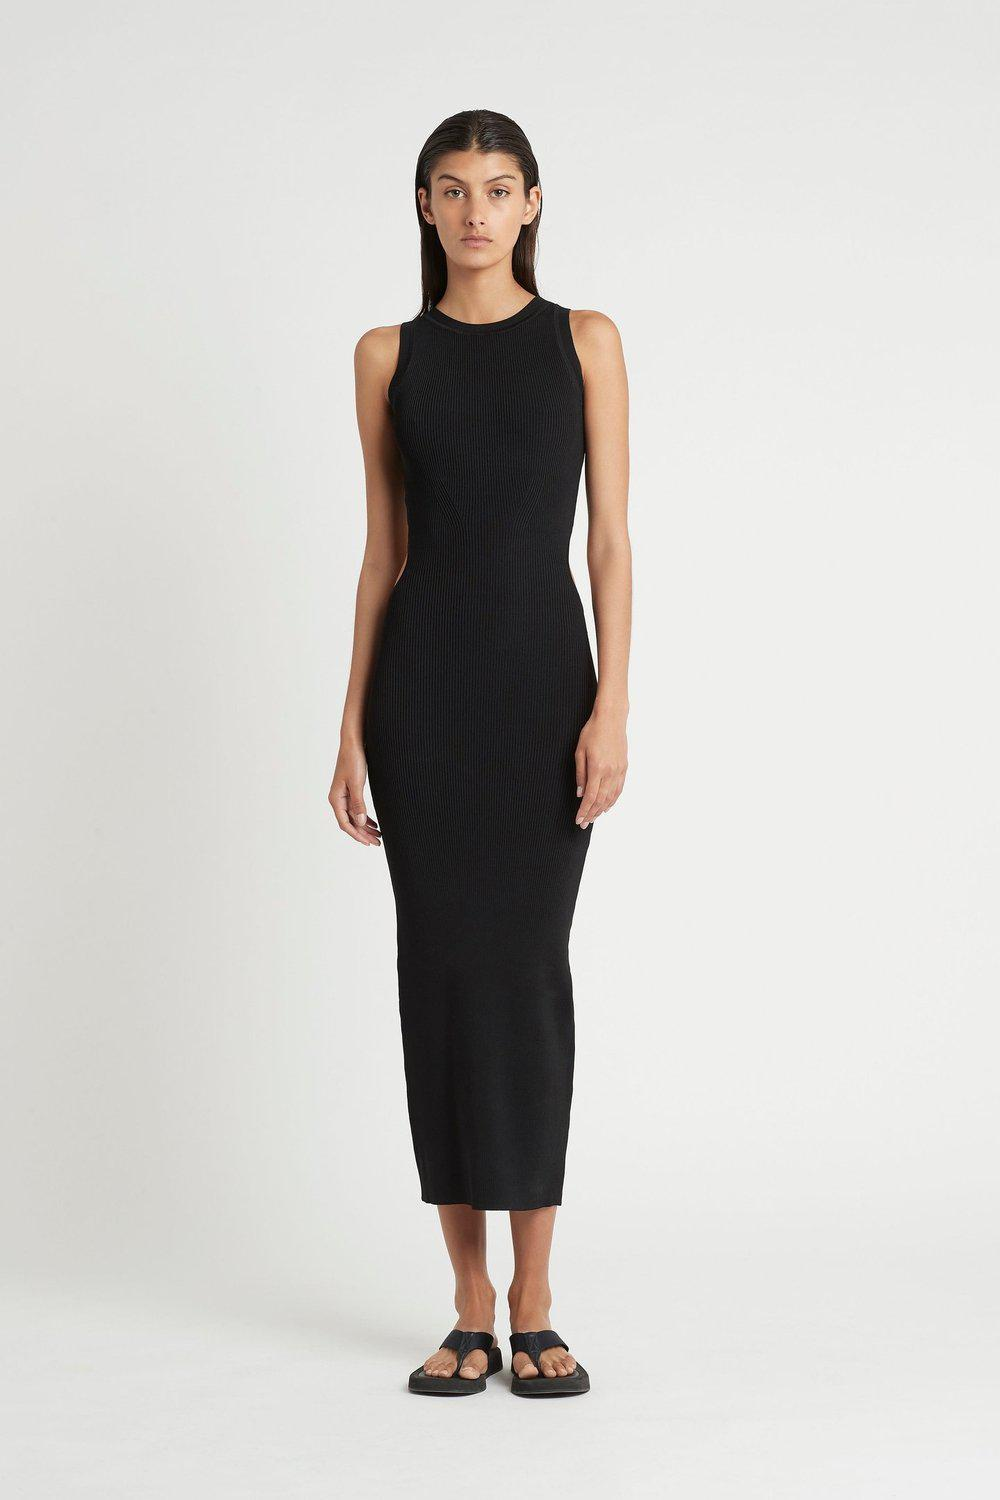 Celle Cut Out Dress / Black | SIR | Mad About The Boy